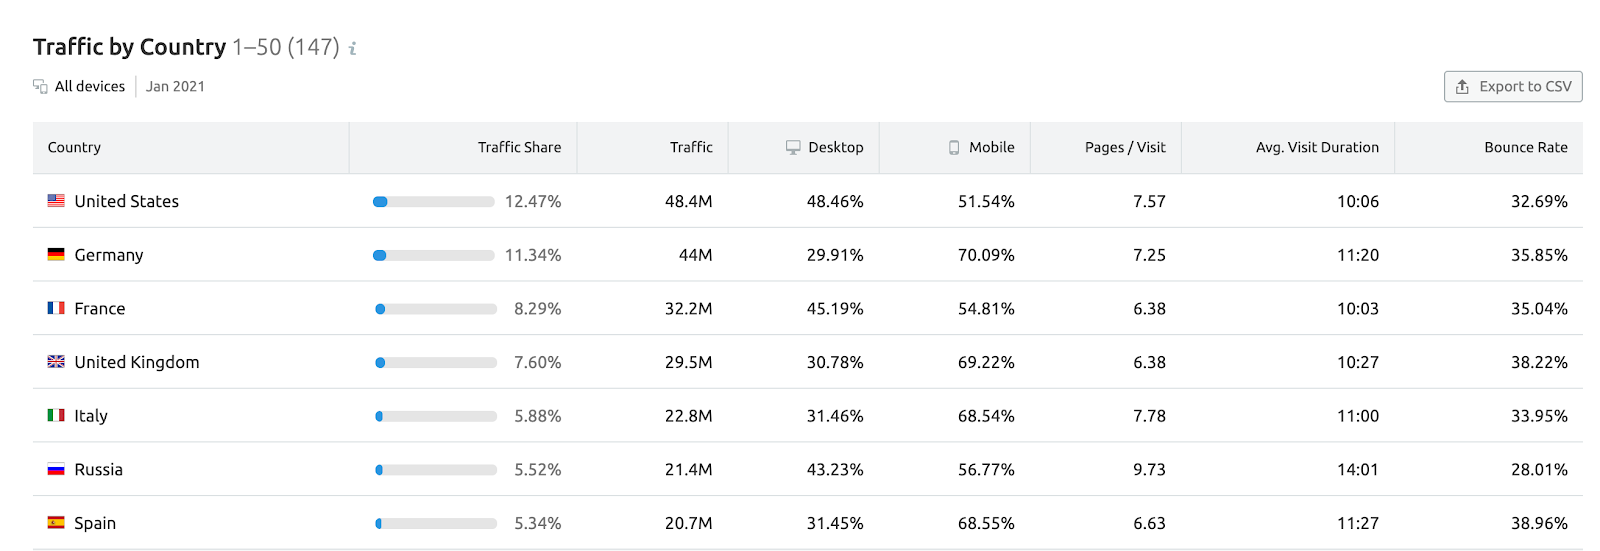 traffic analytics semrush traffic by country